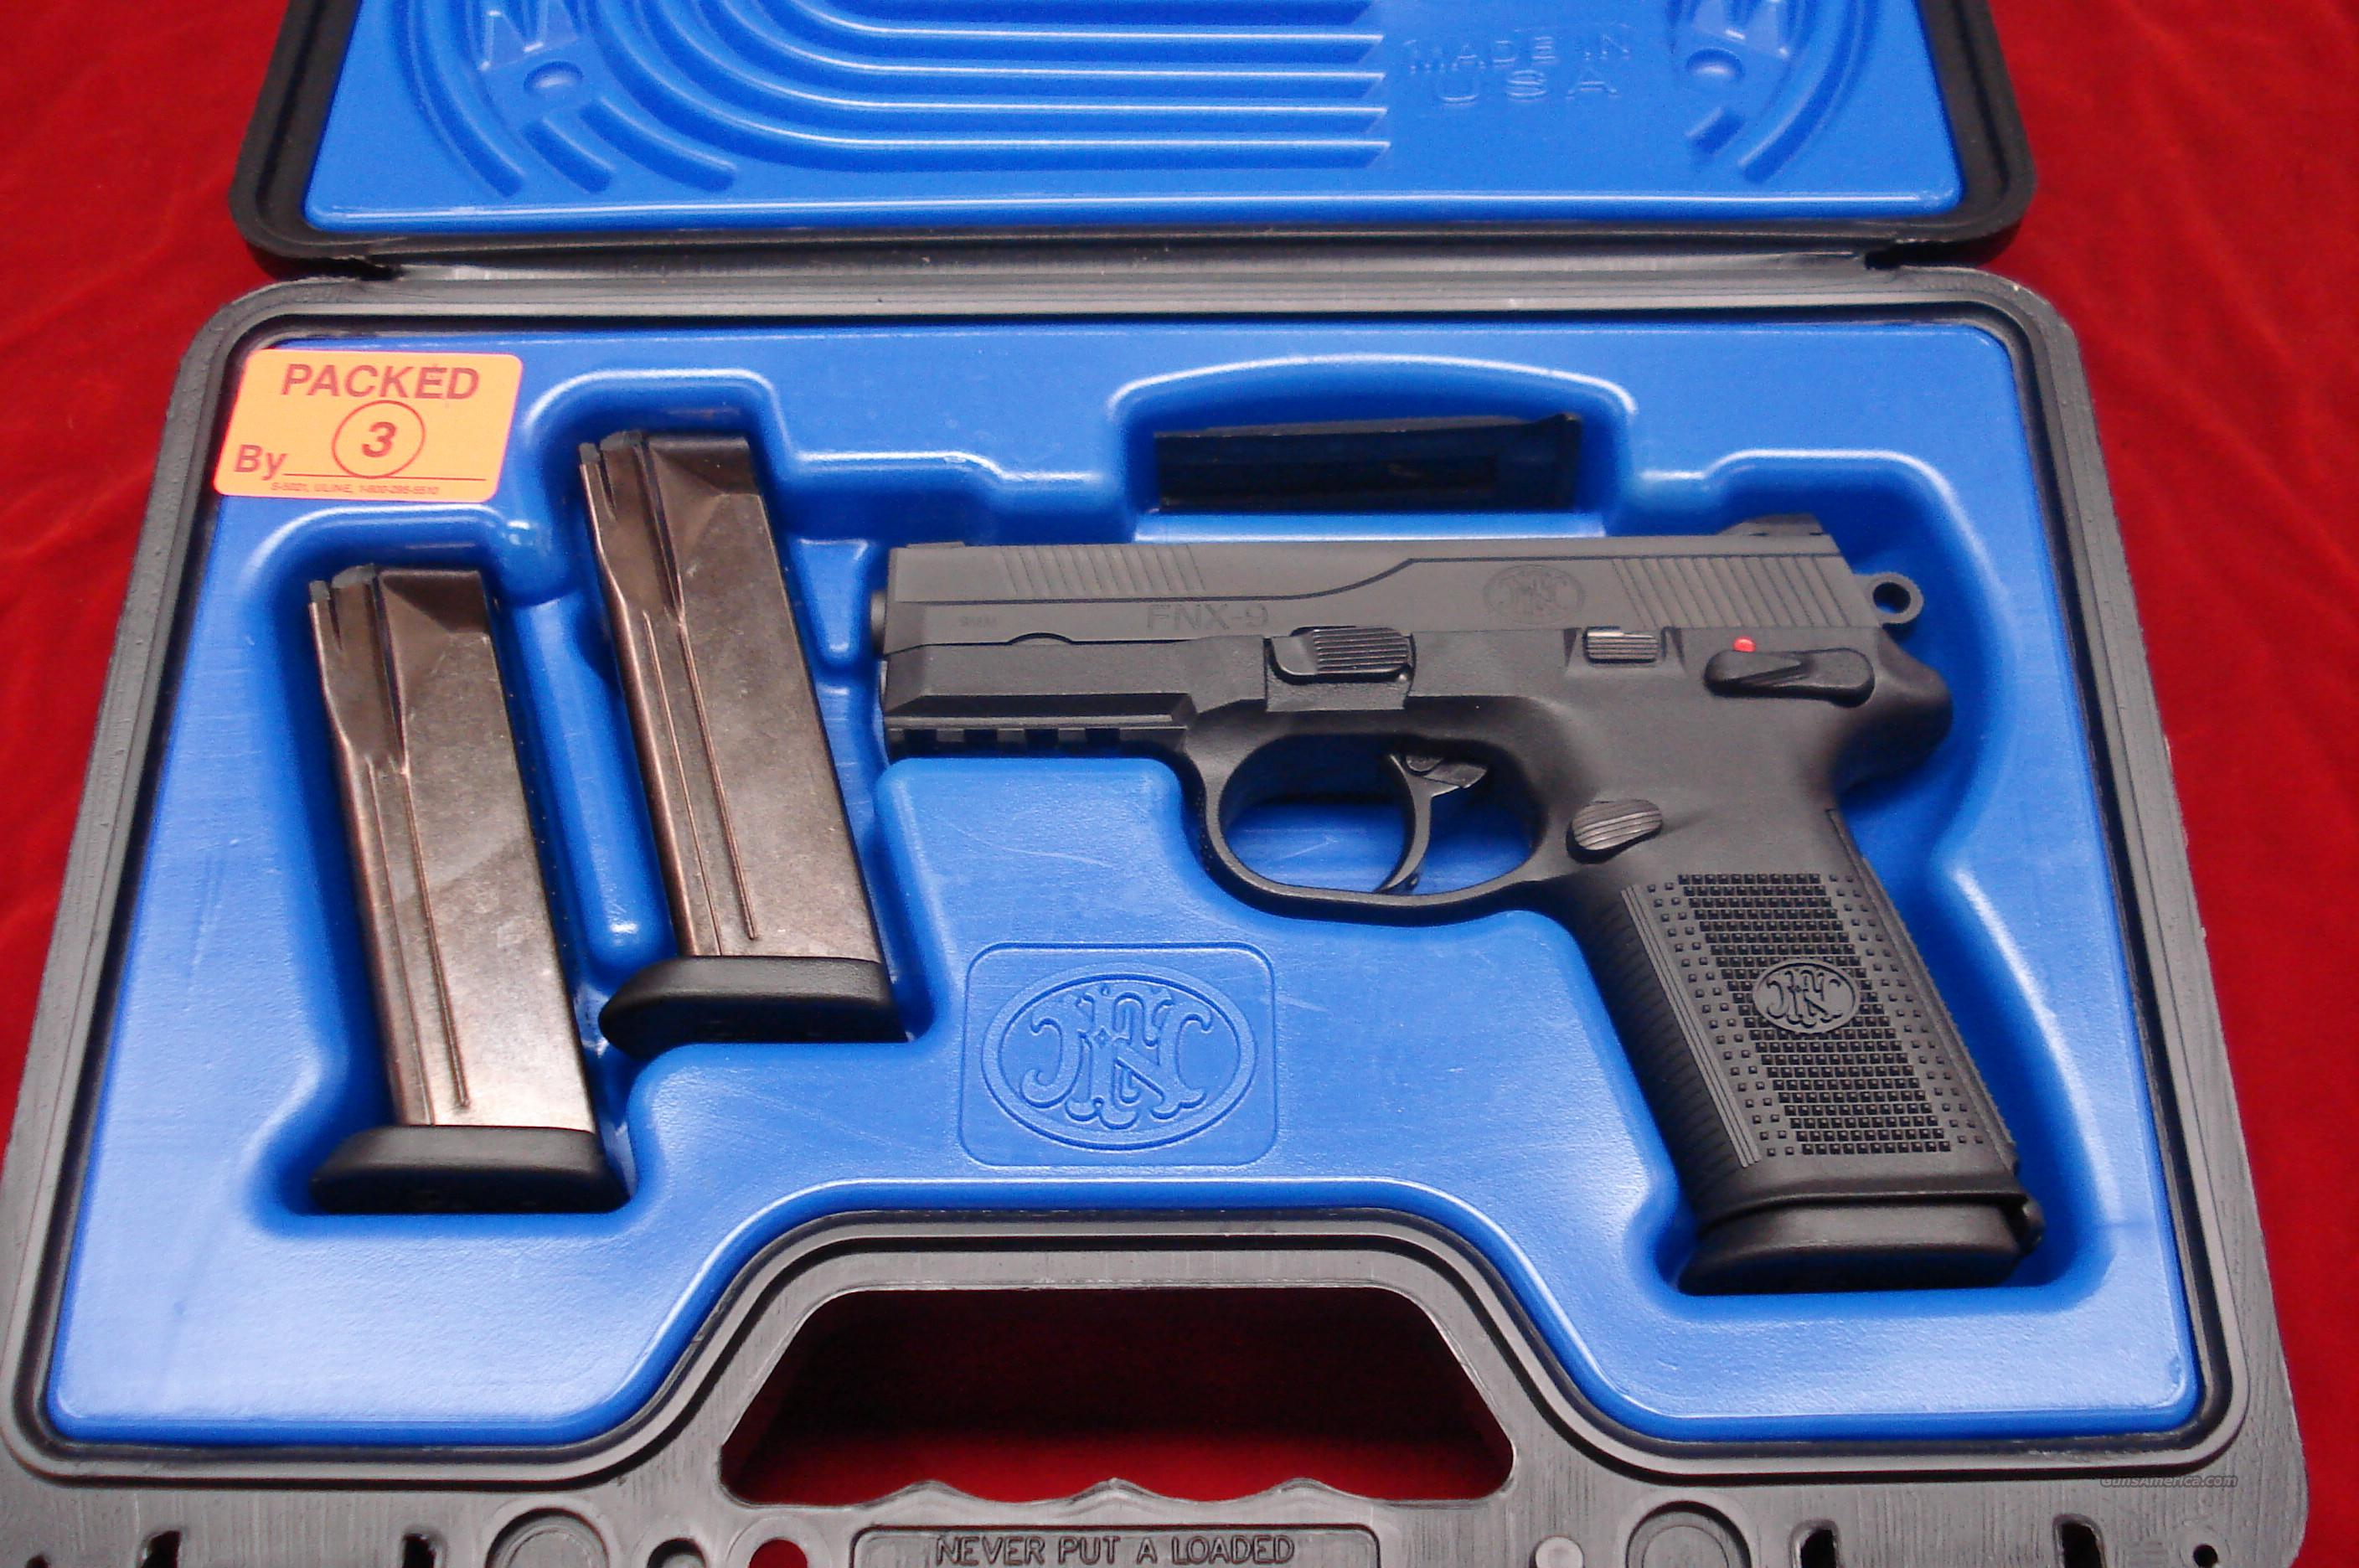 FN FNX-9 9MM WITH 3 HIGH CAPACITY MAGAZINES LNIB  Guns > Pistols > FNH - Fabrique Nationale (FN) Pistols > FNP